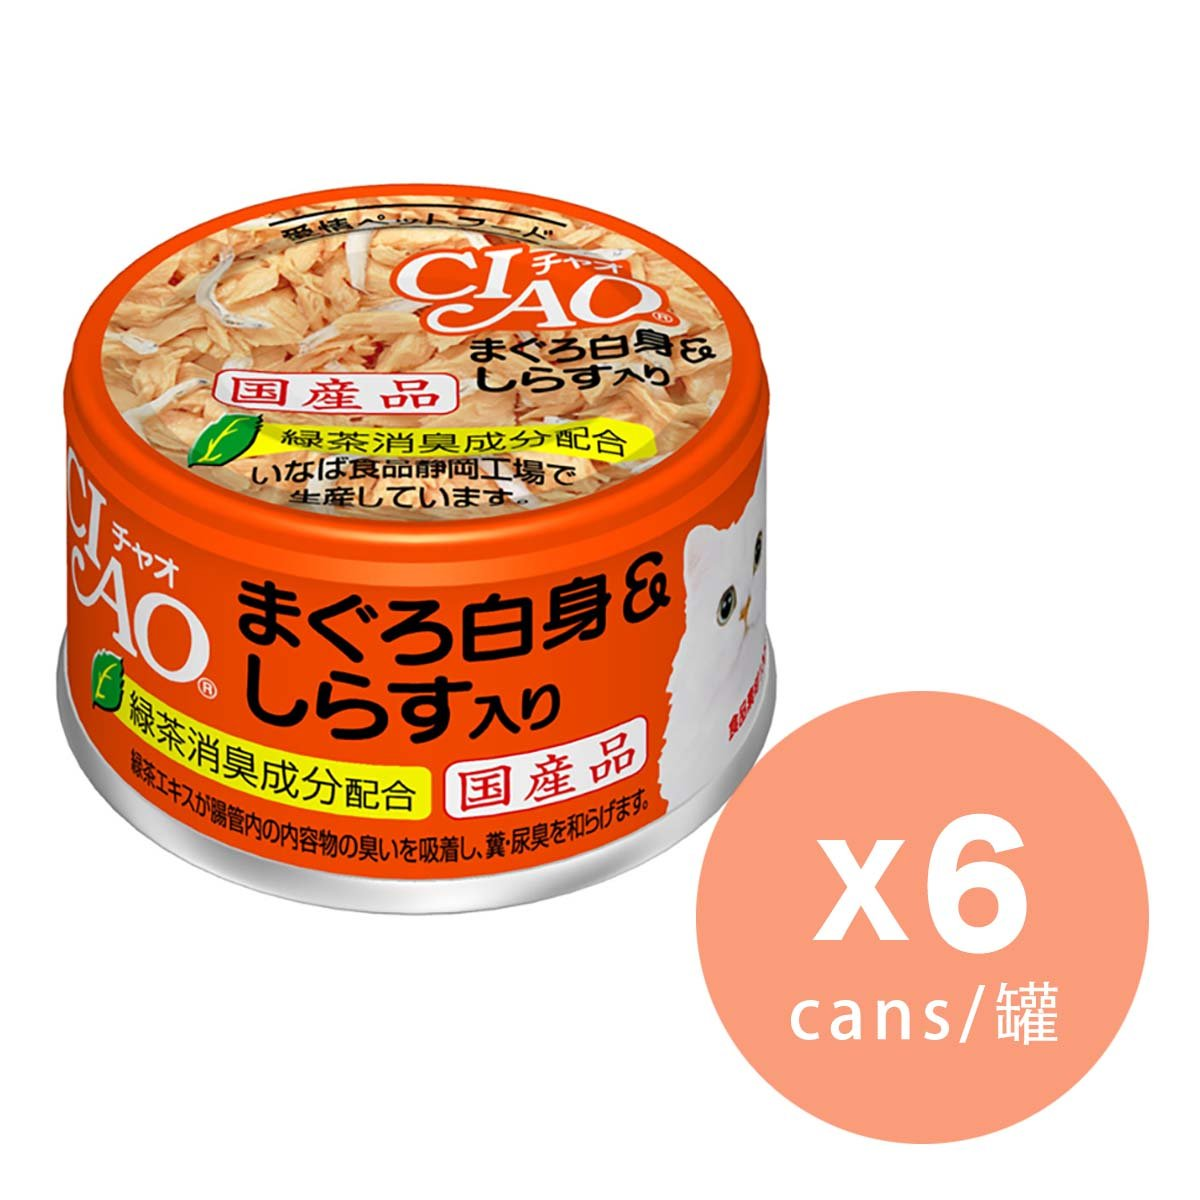 CIAO WHITE - Maguro White Meat with White Bait A-02 x6